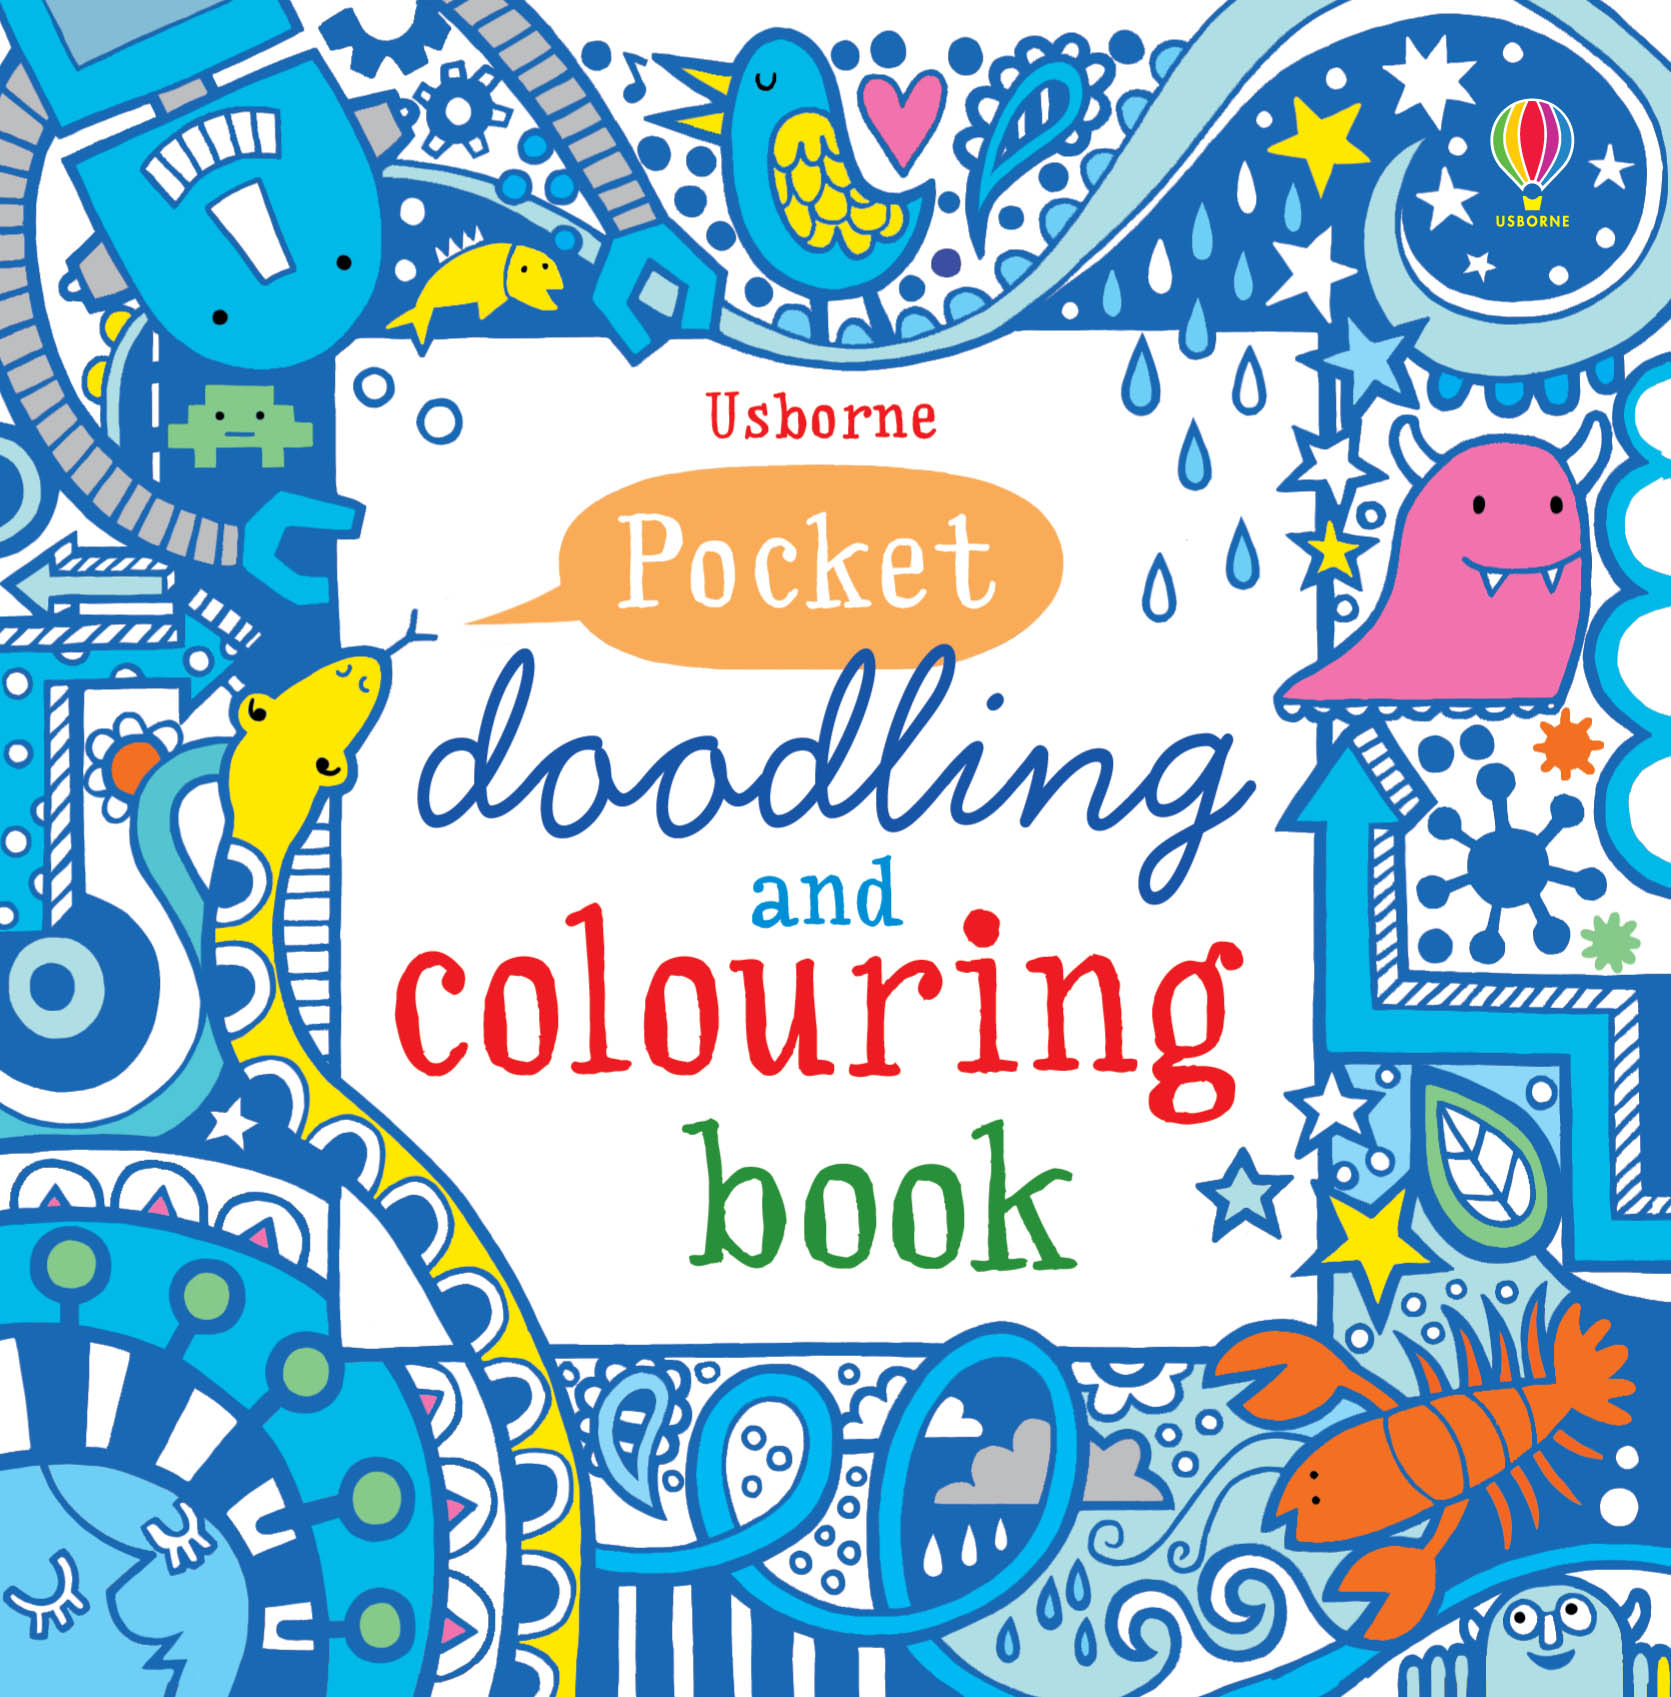 Delighted Coloring Book Wallpaper Small Coloring Book App Regular Bulk Coloring Books Animal Coloring Book Old Animal Coloring Books RedBig Coloring Books Pocket Doodling And Colouring Book: Blue\u201d At Usborne Children\u0027s Books